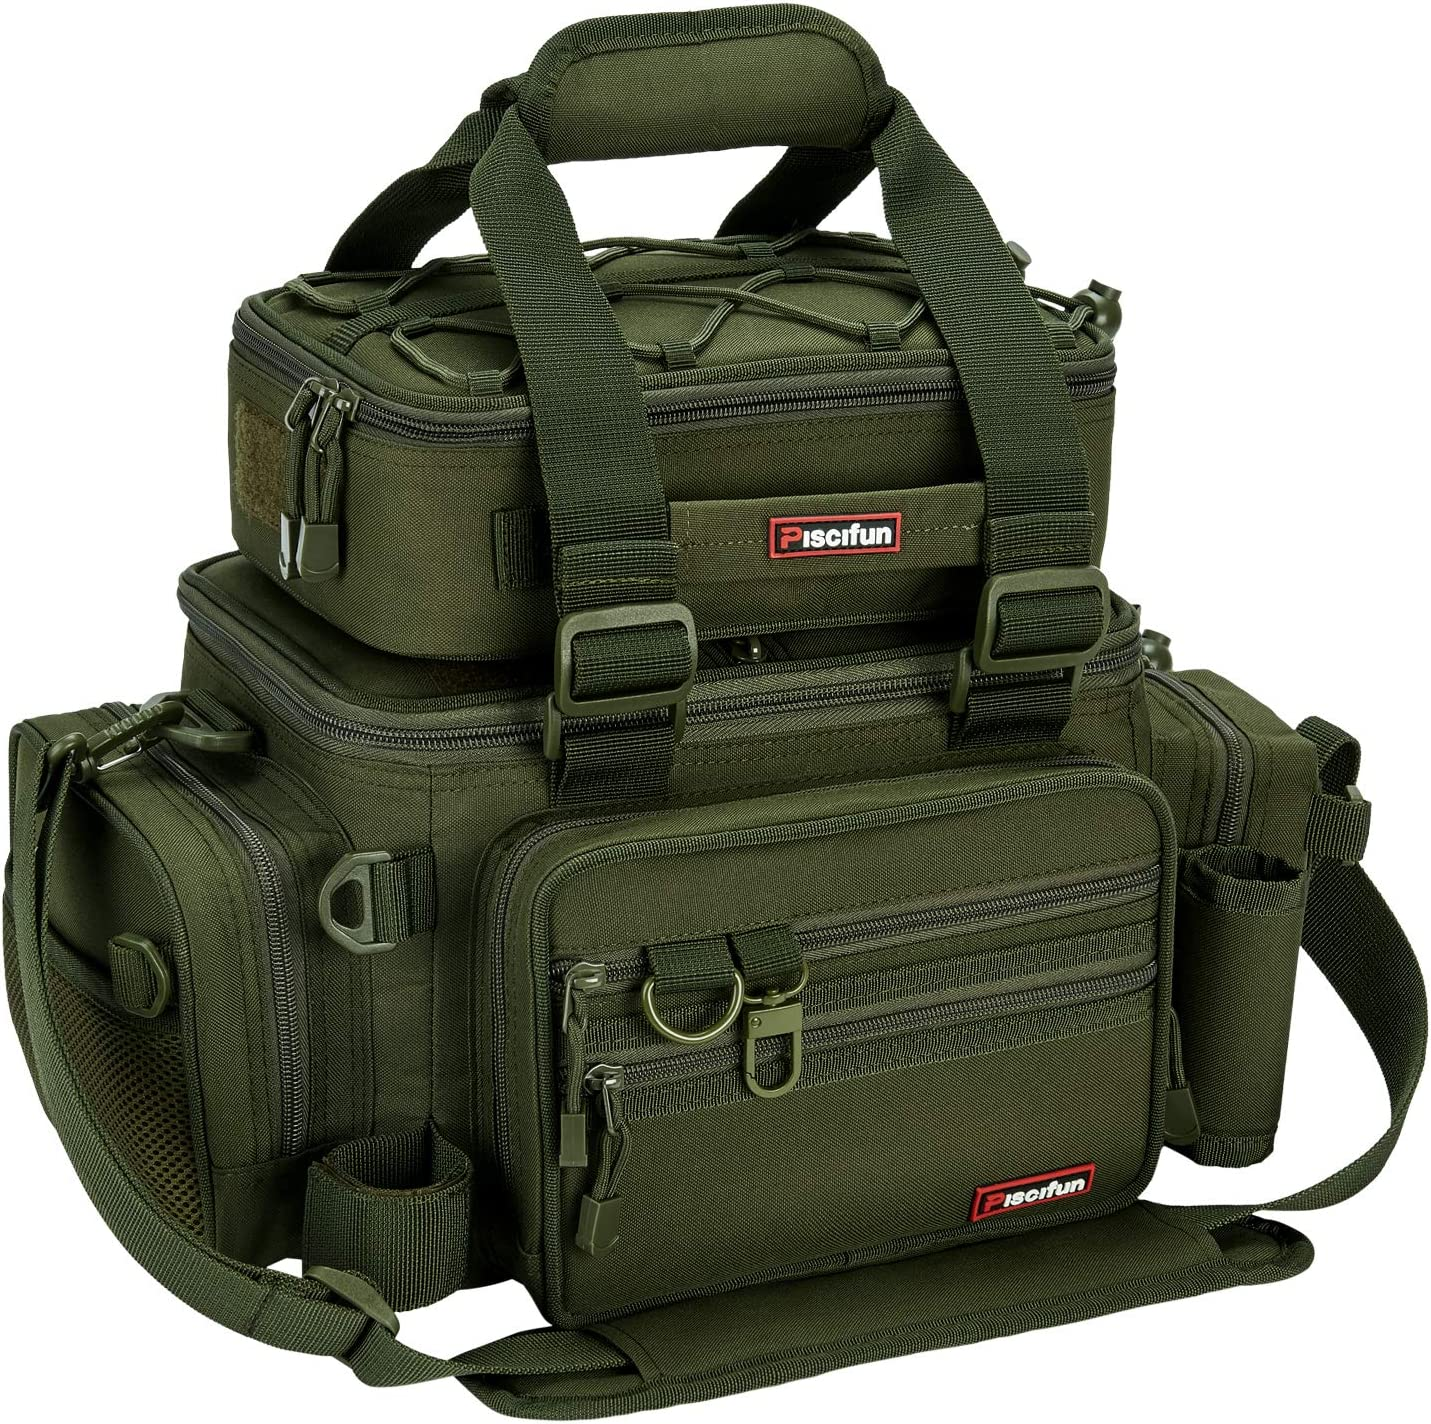 Piscifun Outdoor Fishing Tackle Box Bag